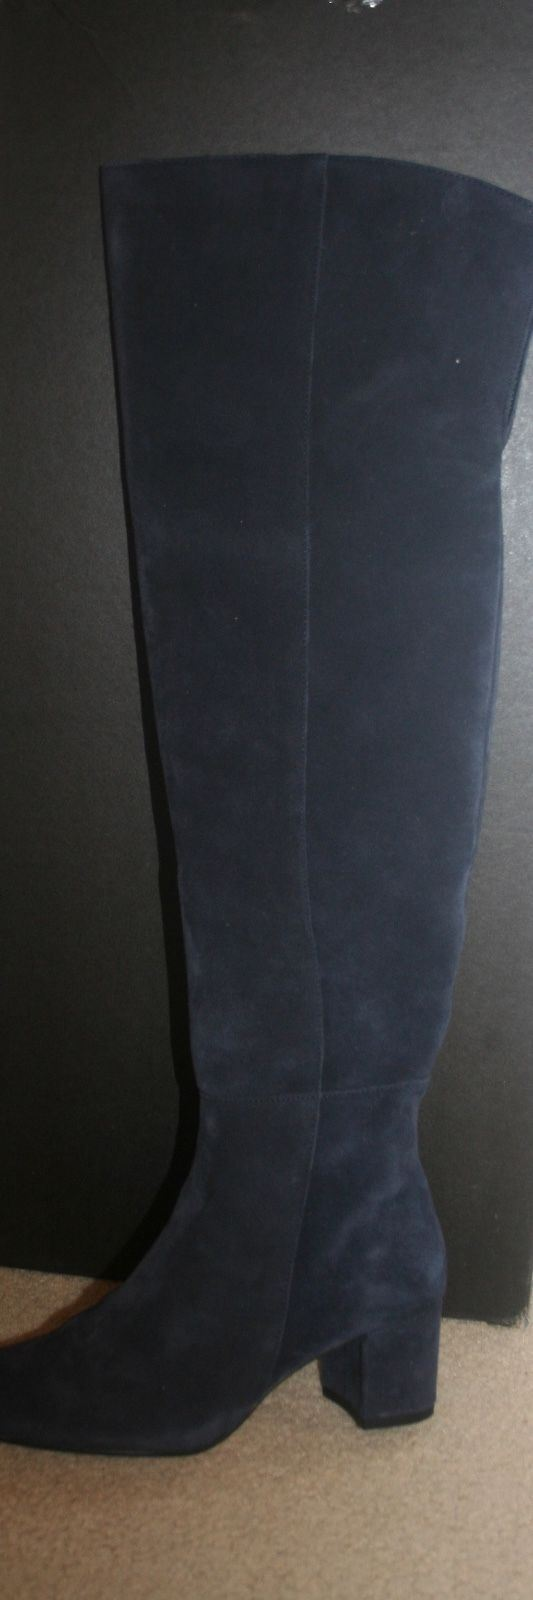 J.CREW SUEDE OVER-THE-KNEE Stiefel SIZE 6M DARK PACIFIC F8009 F8009 PACIFIC 43a0c7